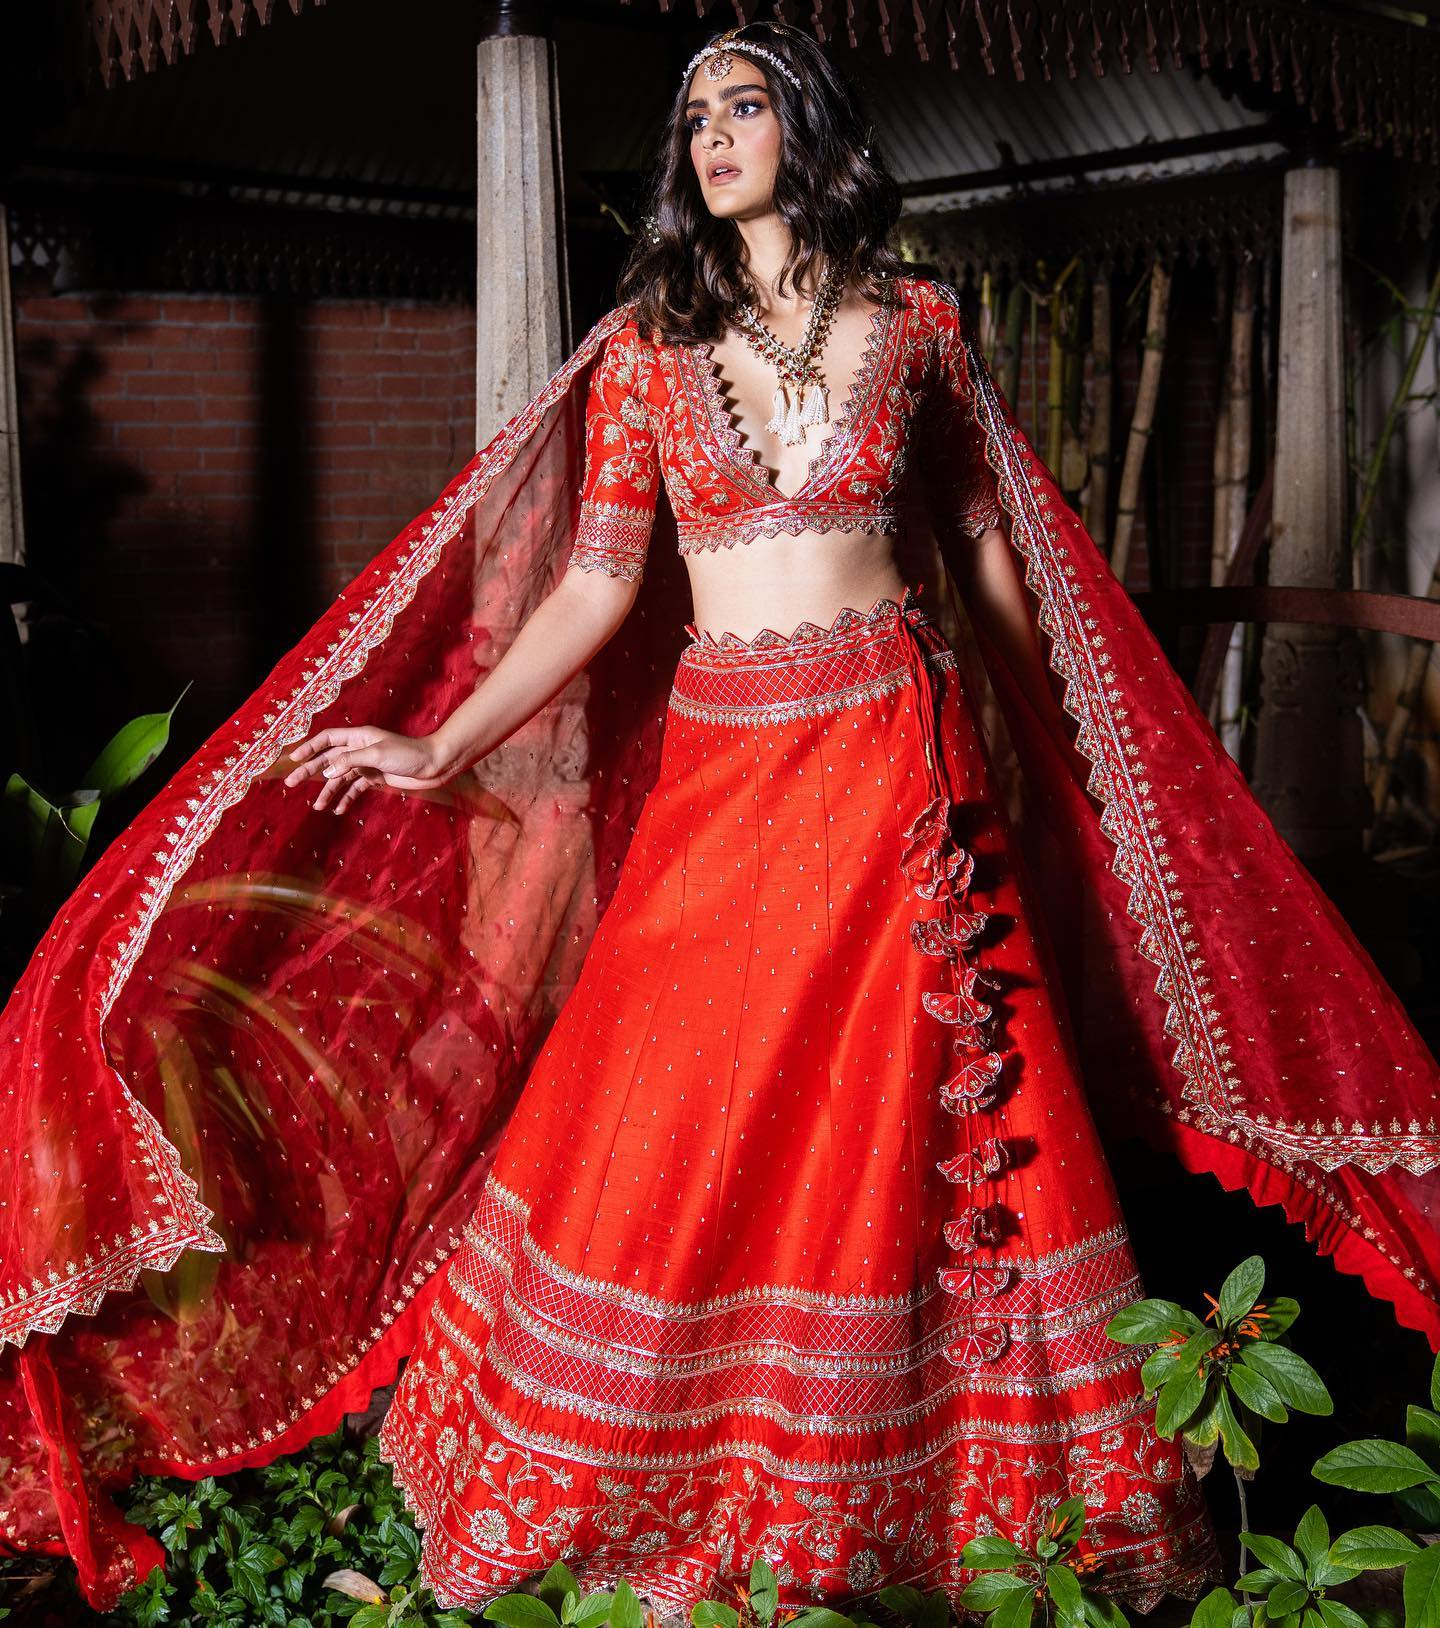 Beautiful tomato red color bridal lehenga and blouse with net dupatta. Blouse and lehenga with hand embroidery work.   2021-09-26